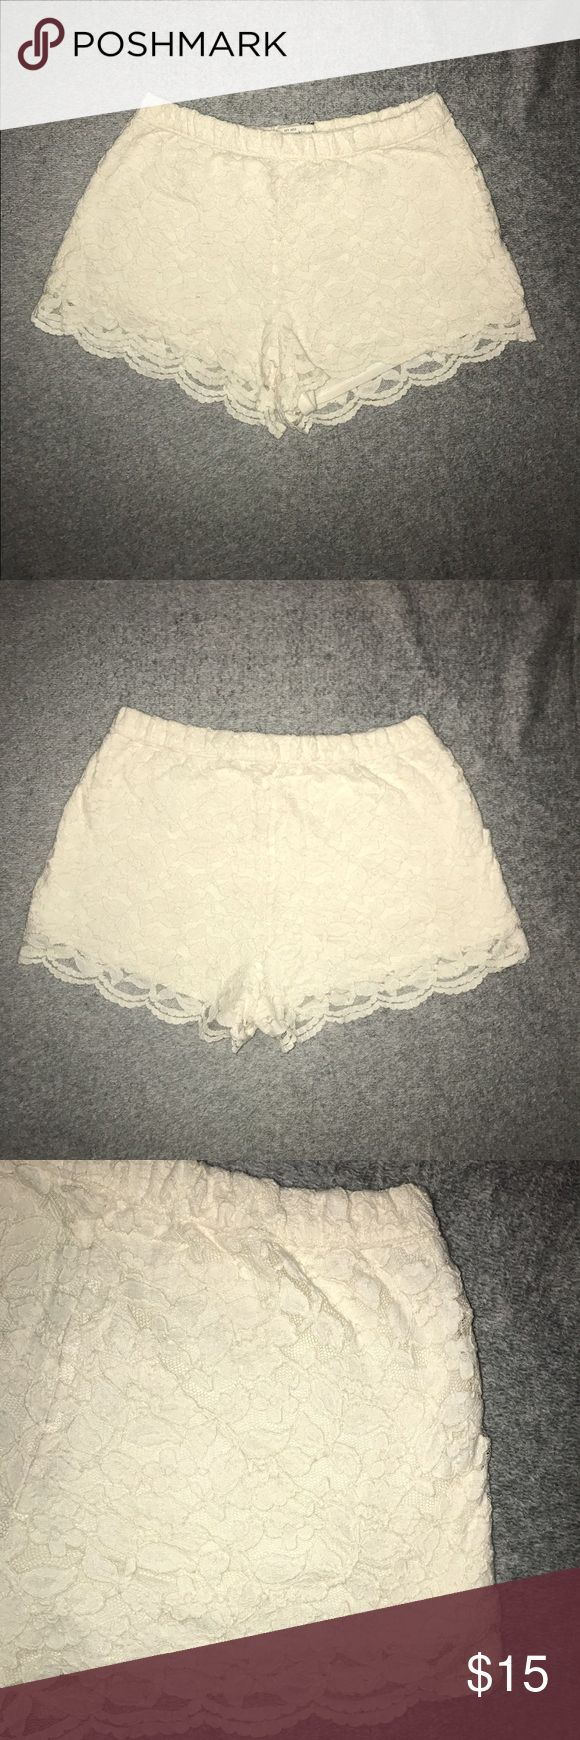 Abercrombie and Fitch shorts Amazing creme color shorts with beautiful floral lace! Only worn a couple of times, in perfect condition! Great addition to your summer wardrobe! Abercrombie & Fitch Shorts